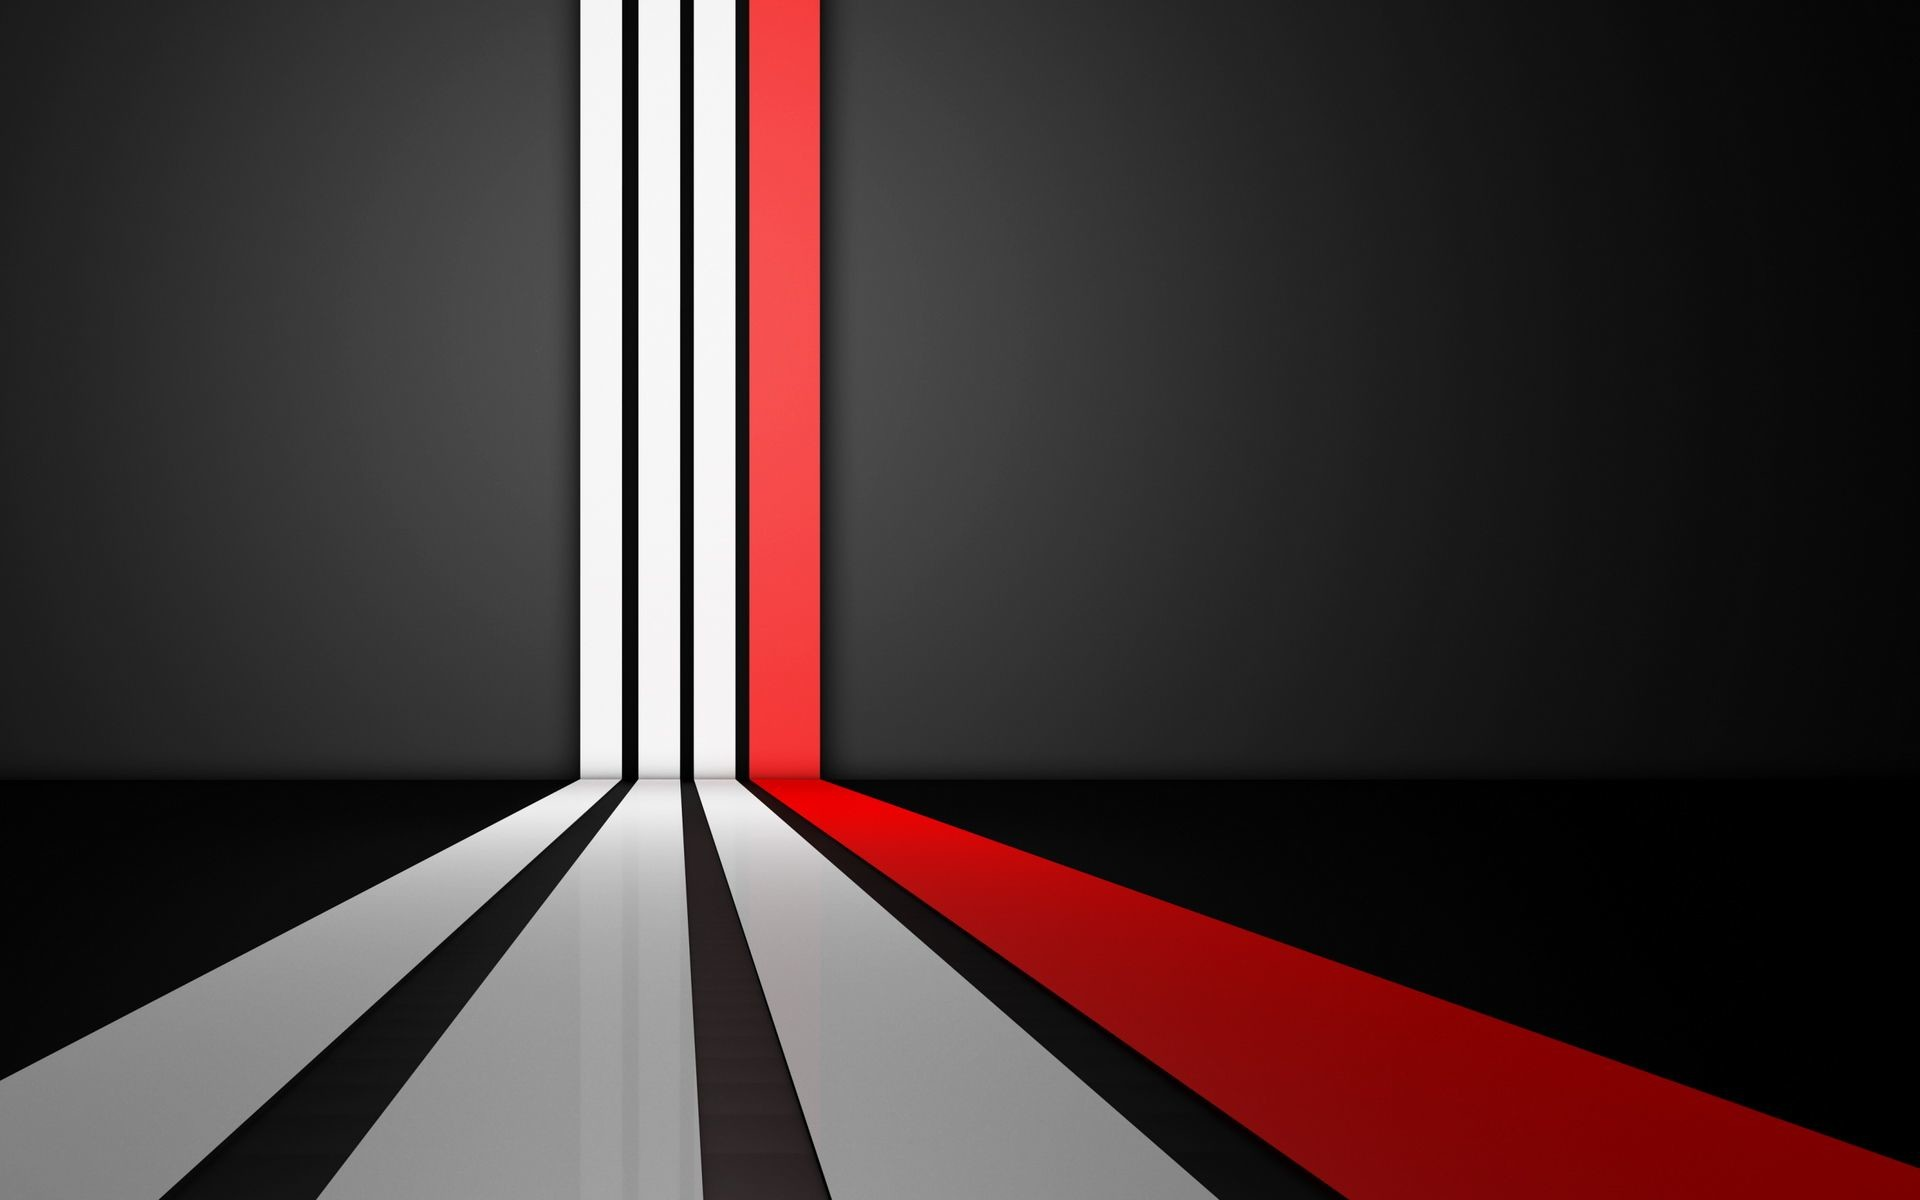 1920x1200 Abstract Art Black And White Red Wallpaper 1080p HD